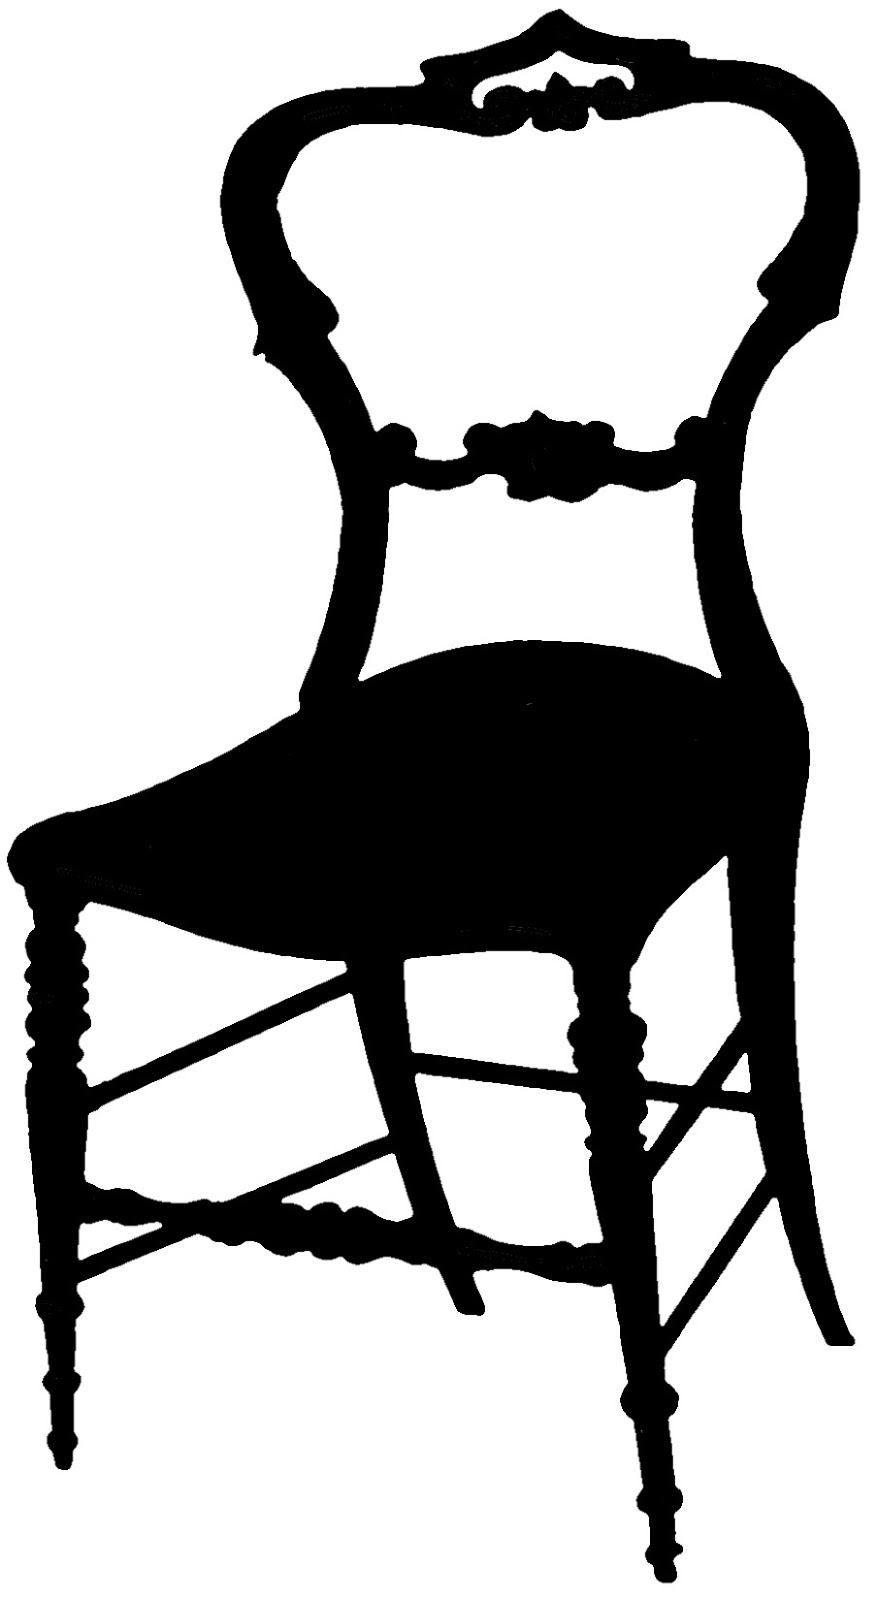 frenchychairSilhouette-graphicsfairy1